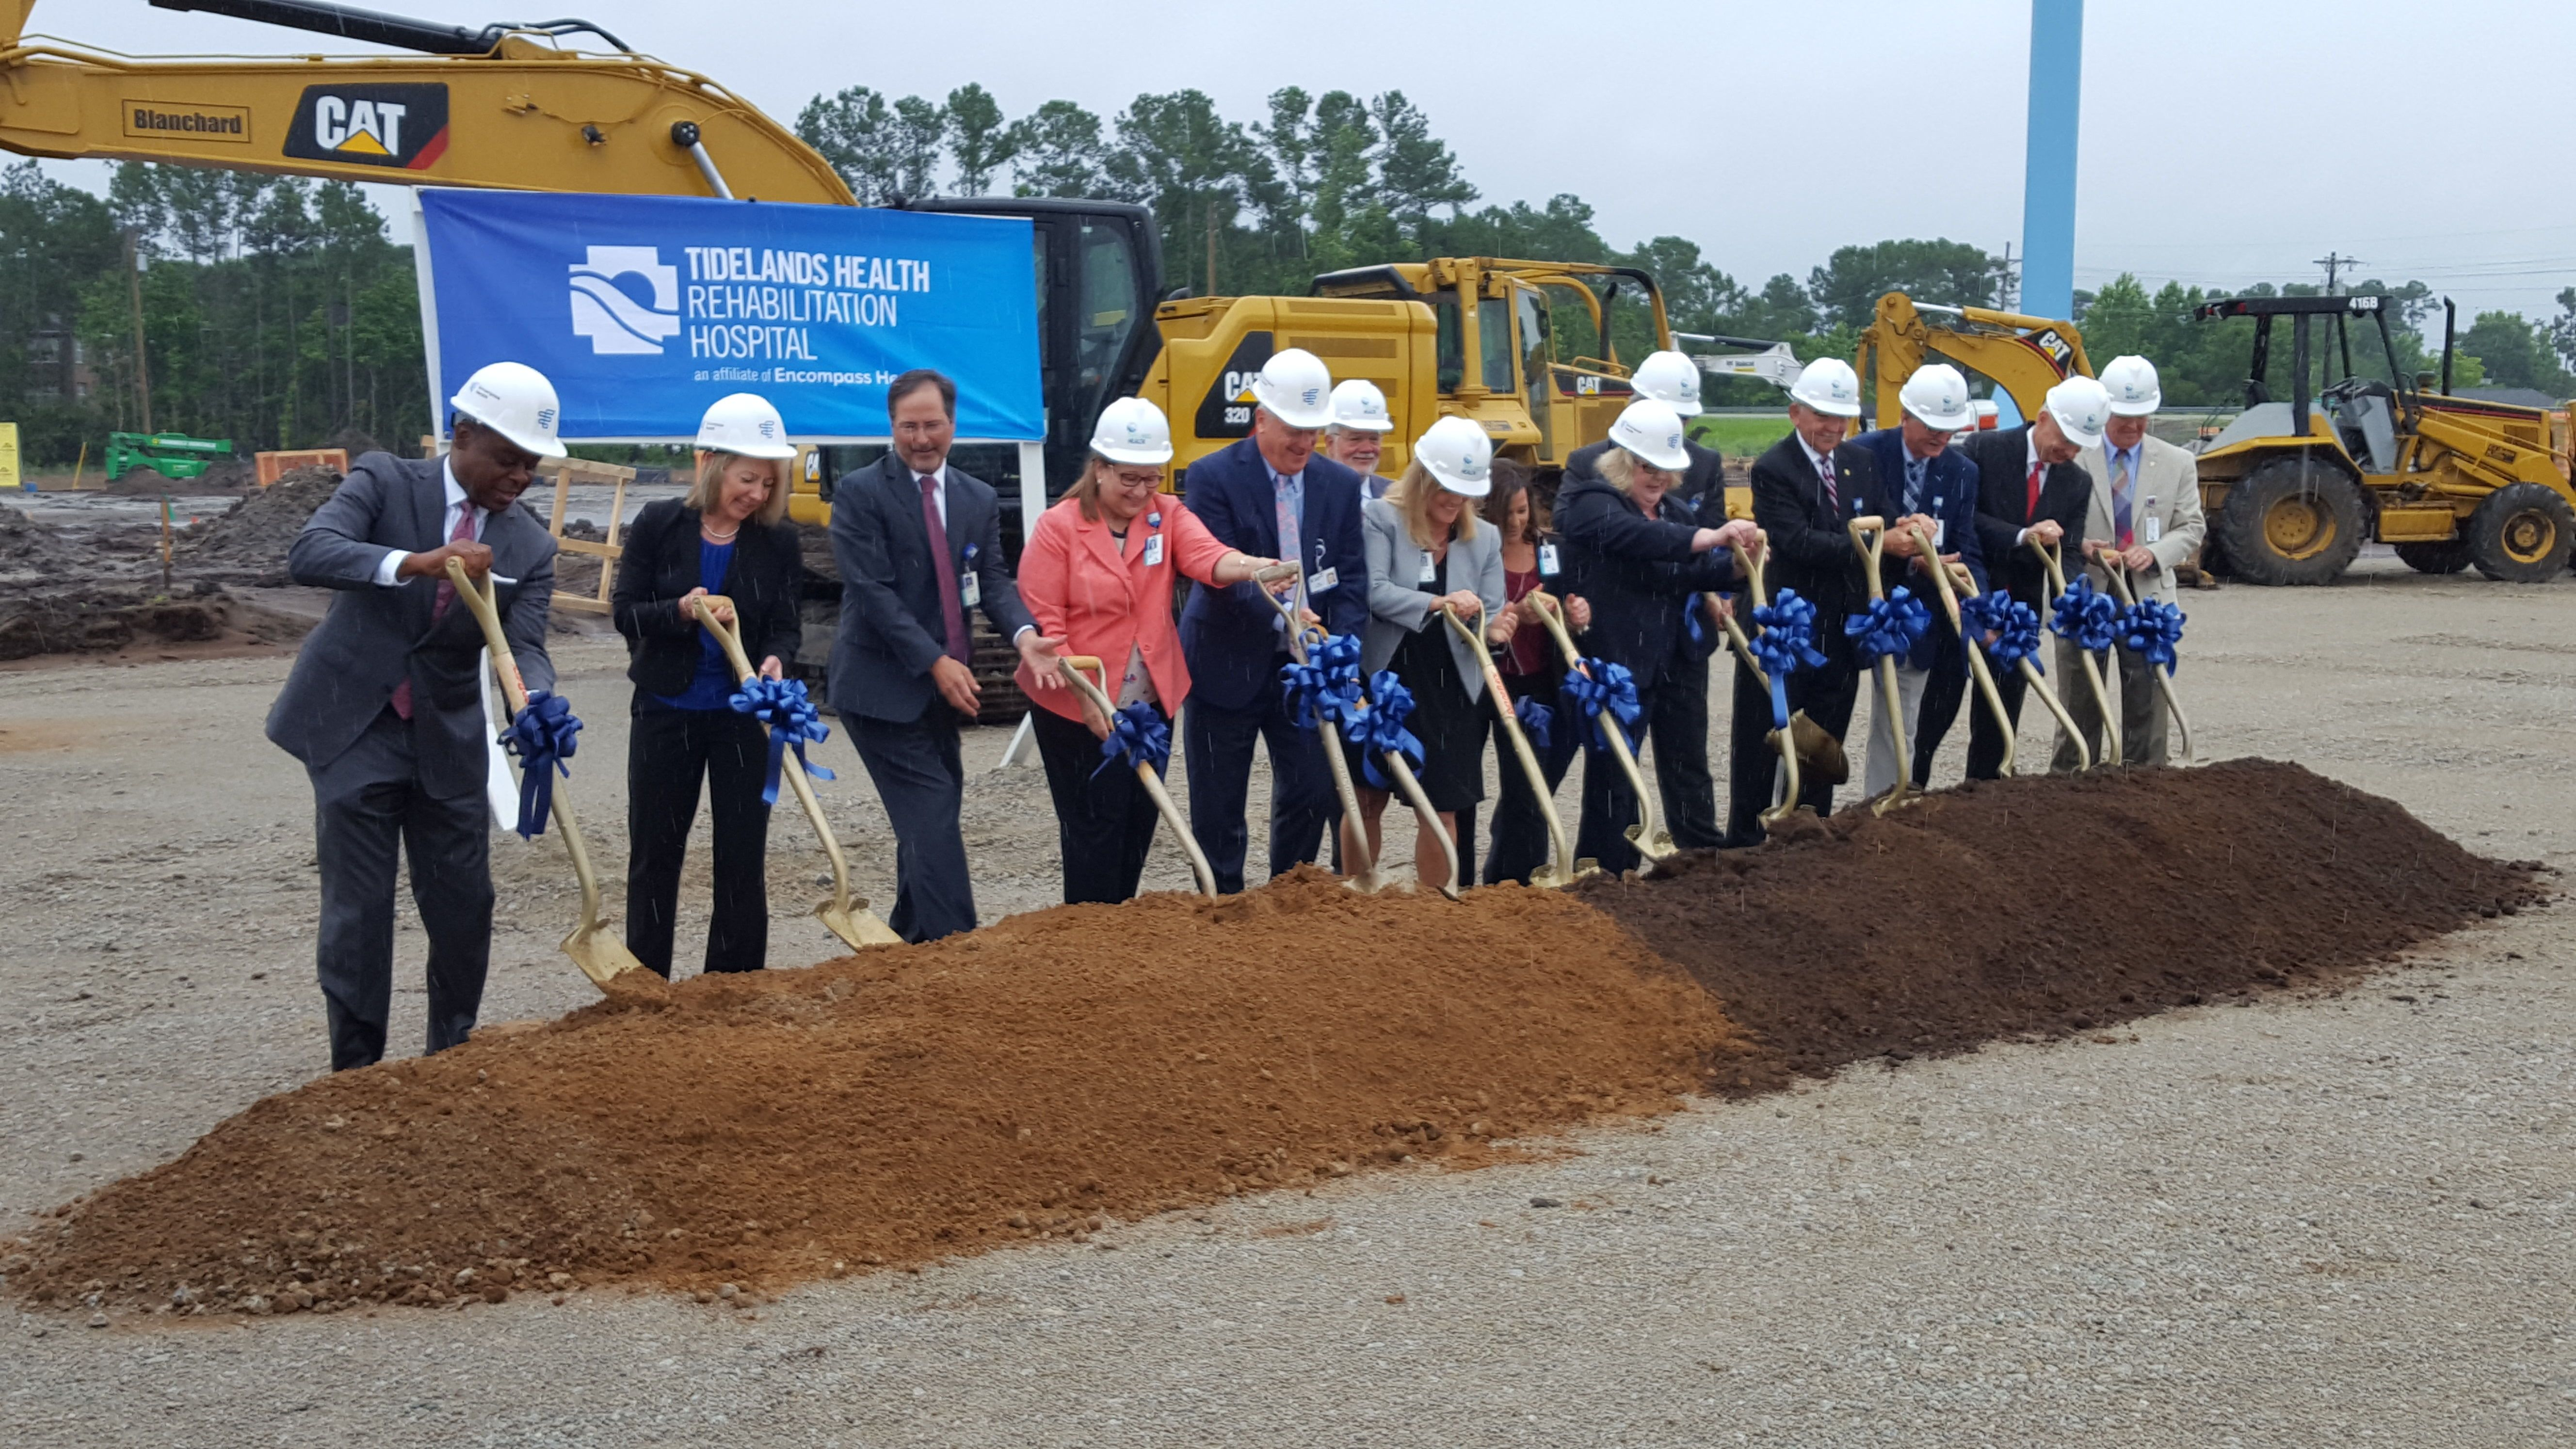 We're getting a new rehabilitation hospital in Little ...